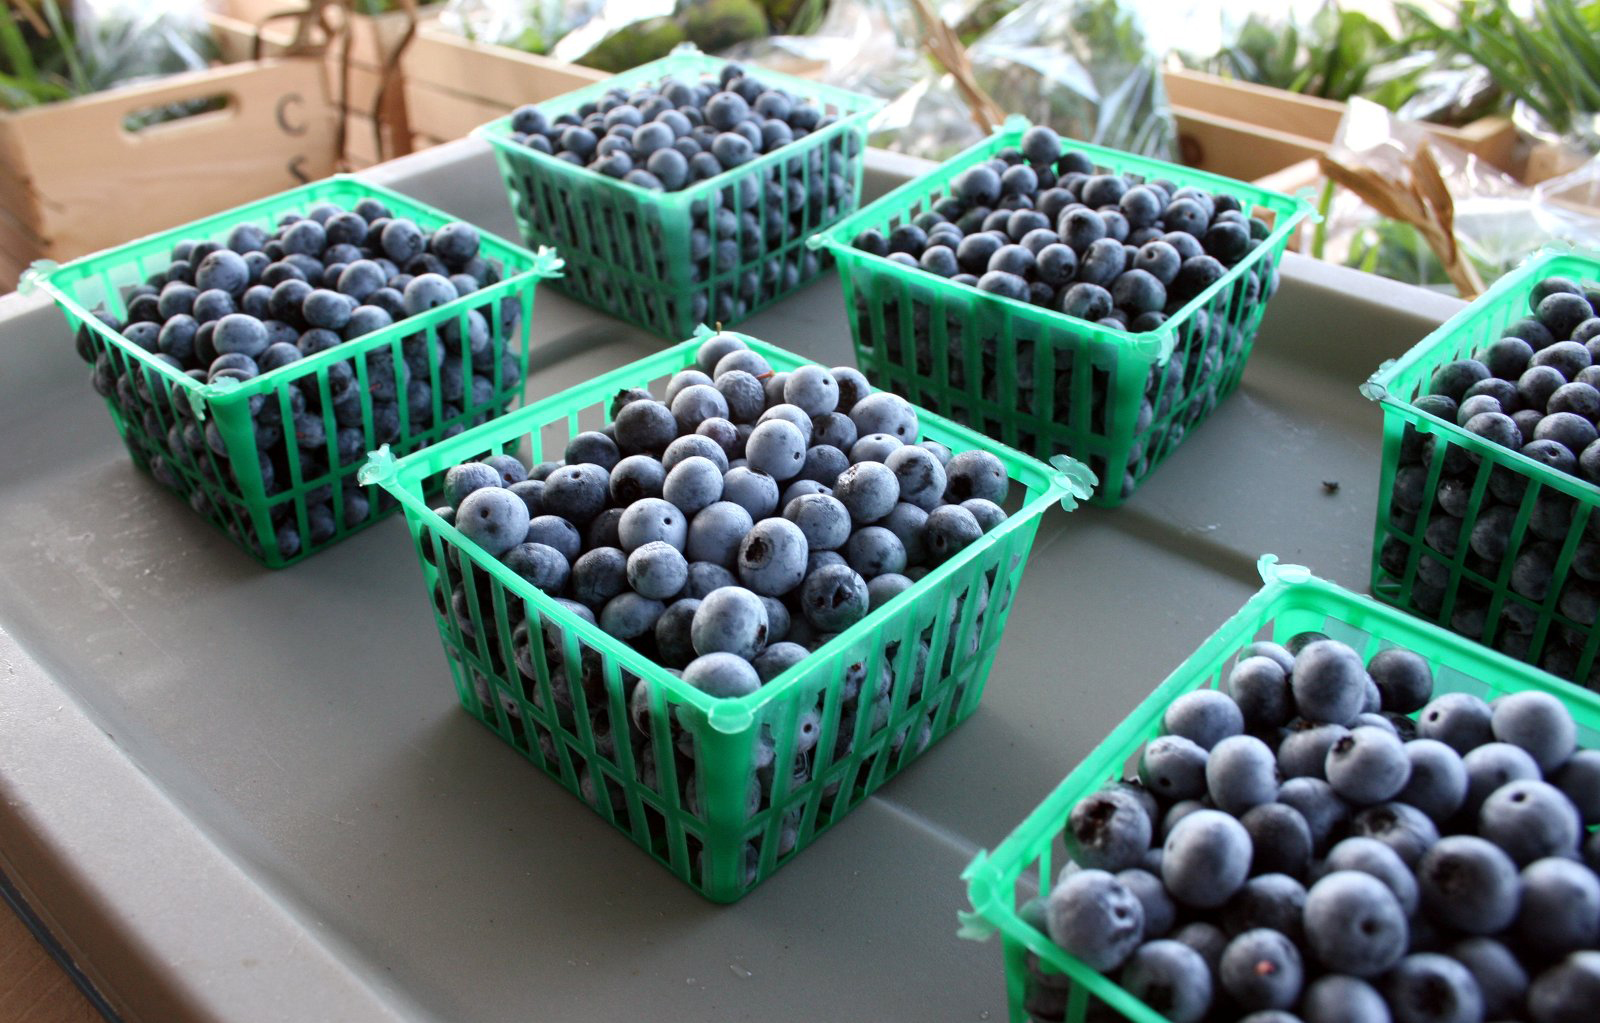 Freshly picked blueberries sit in baskets at the University of Georgia horticulture farm in Athens, Ga.